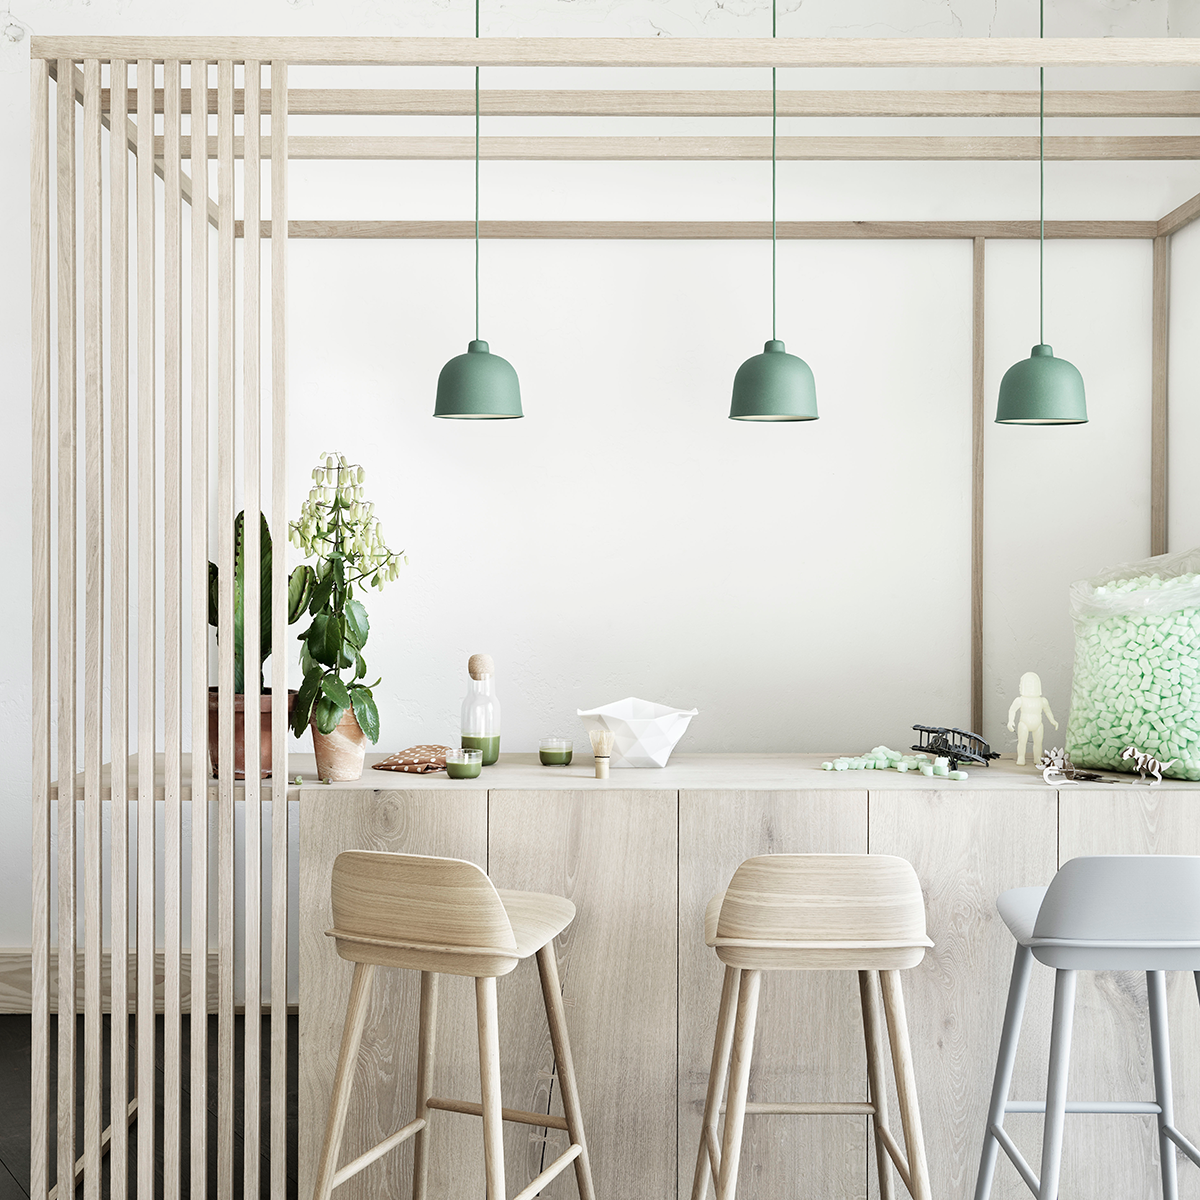 Muuto Grain Suspension Lamp 竹纖 圓頂 吊燈